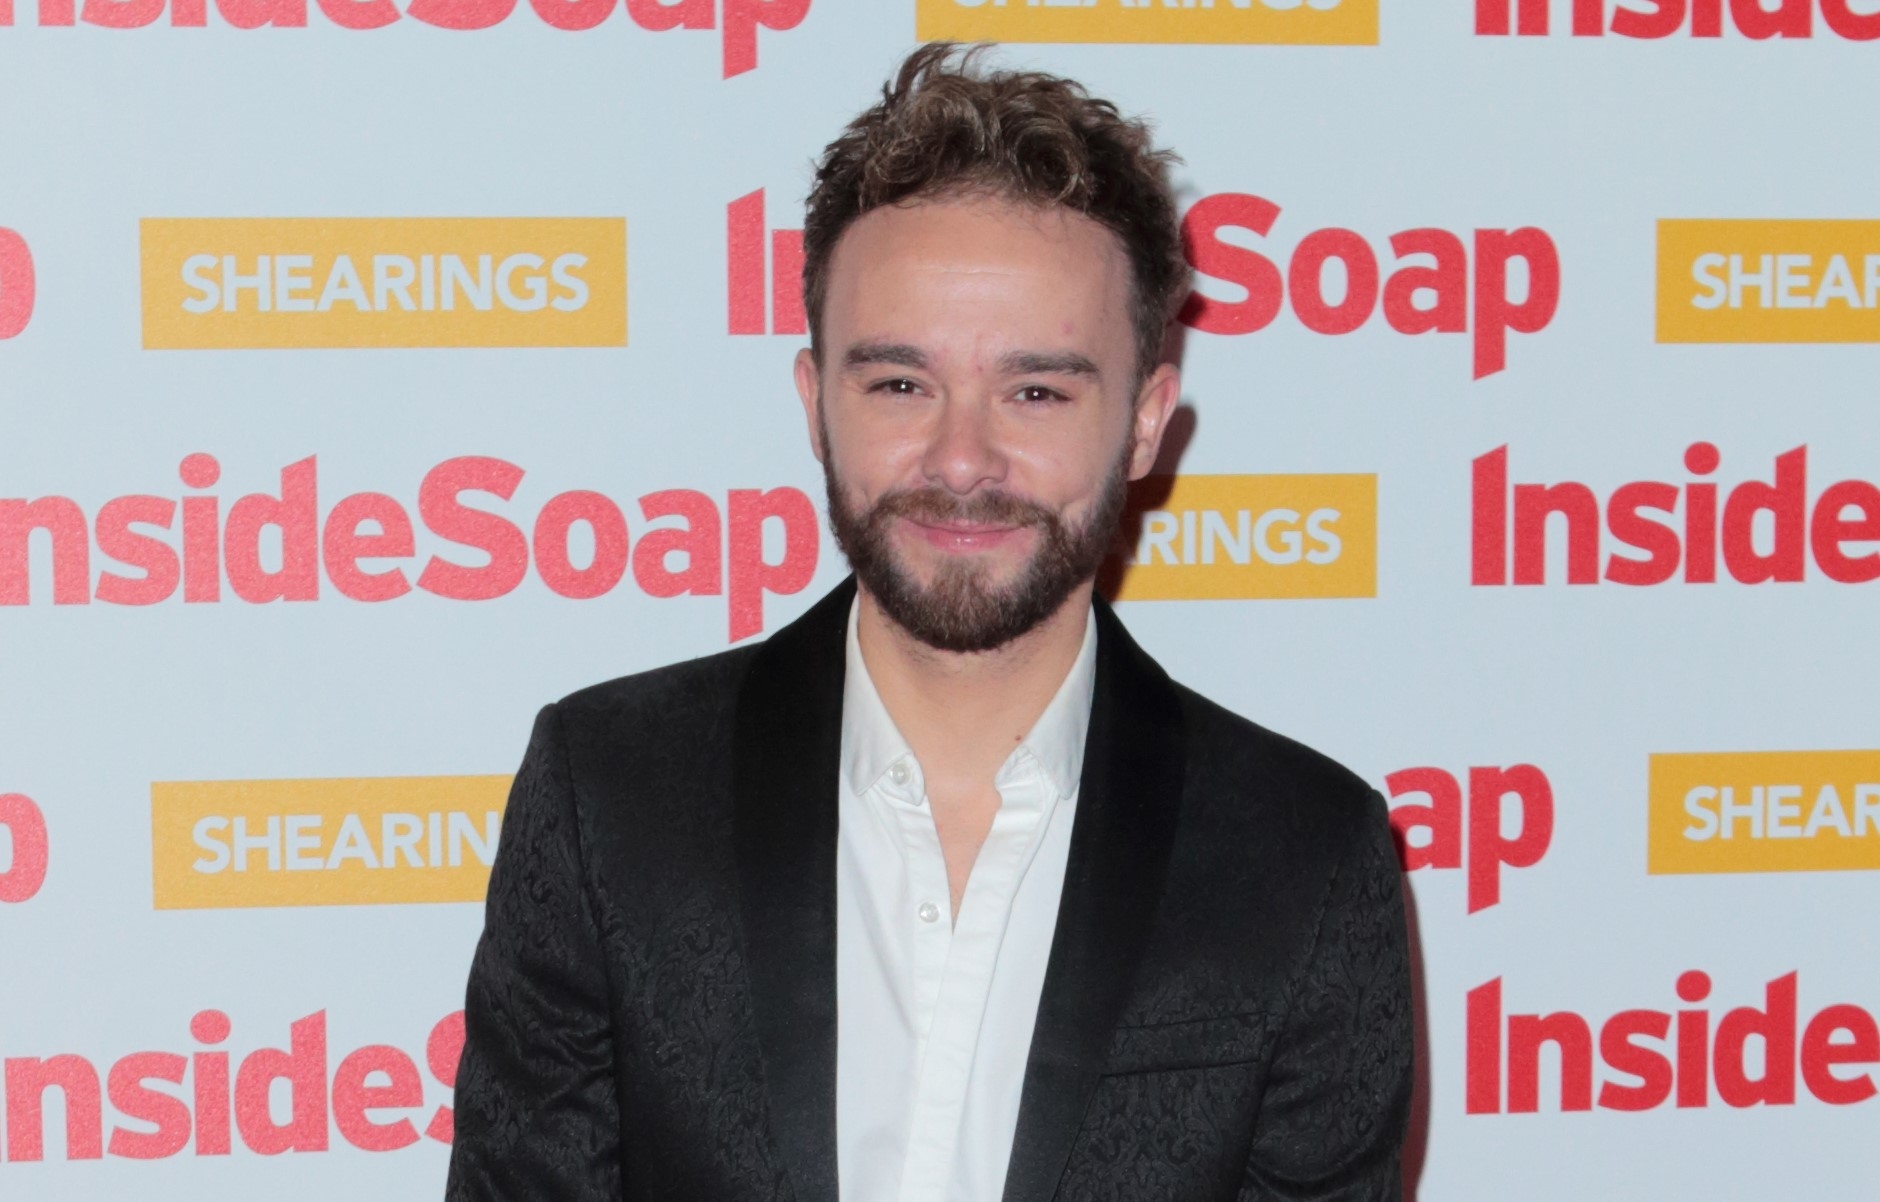 Jack P Shepherd at the Inside Soap Awards 2018